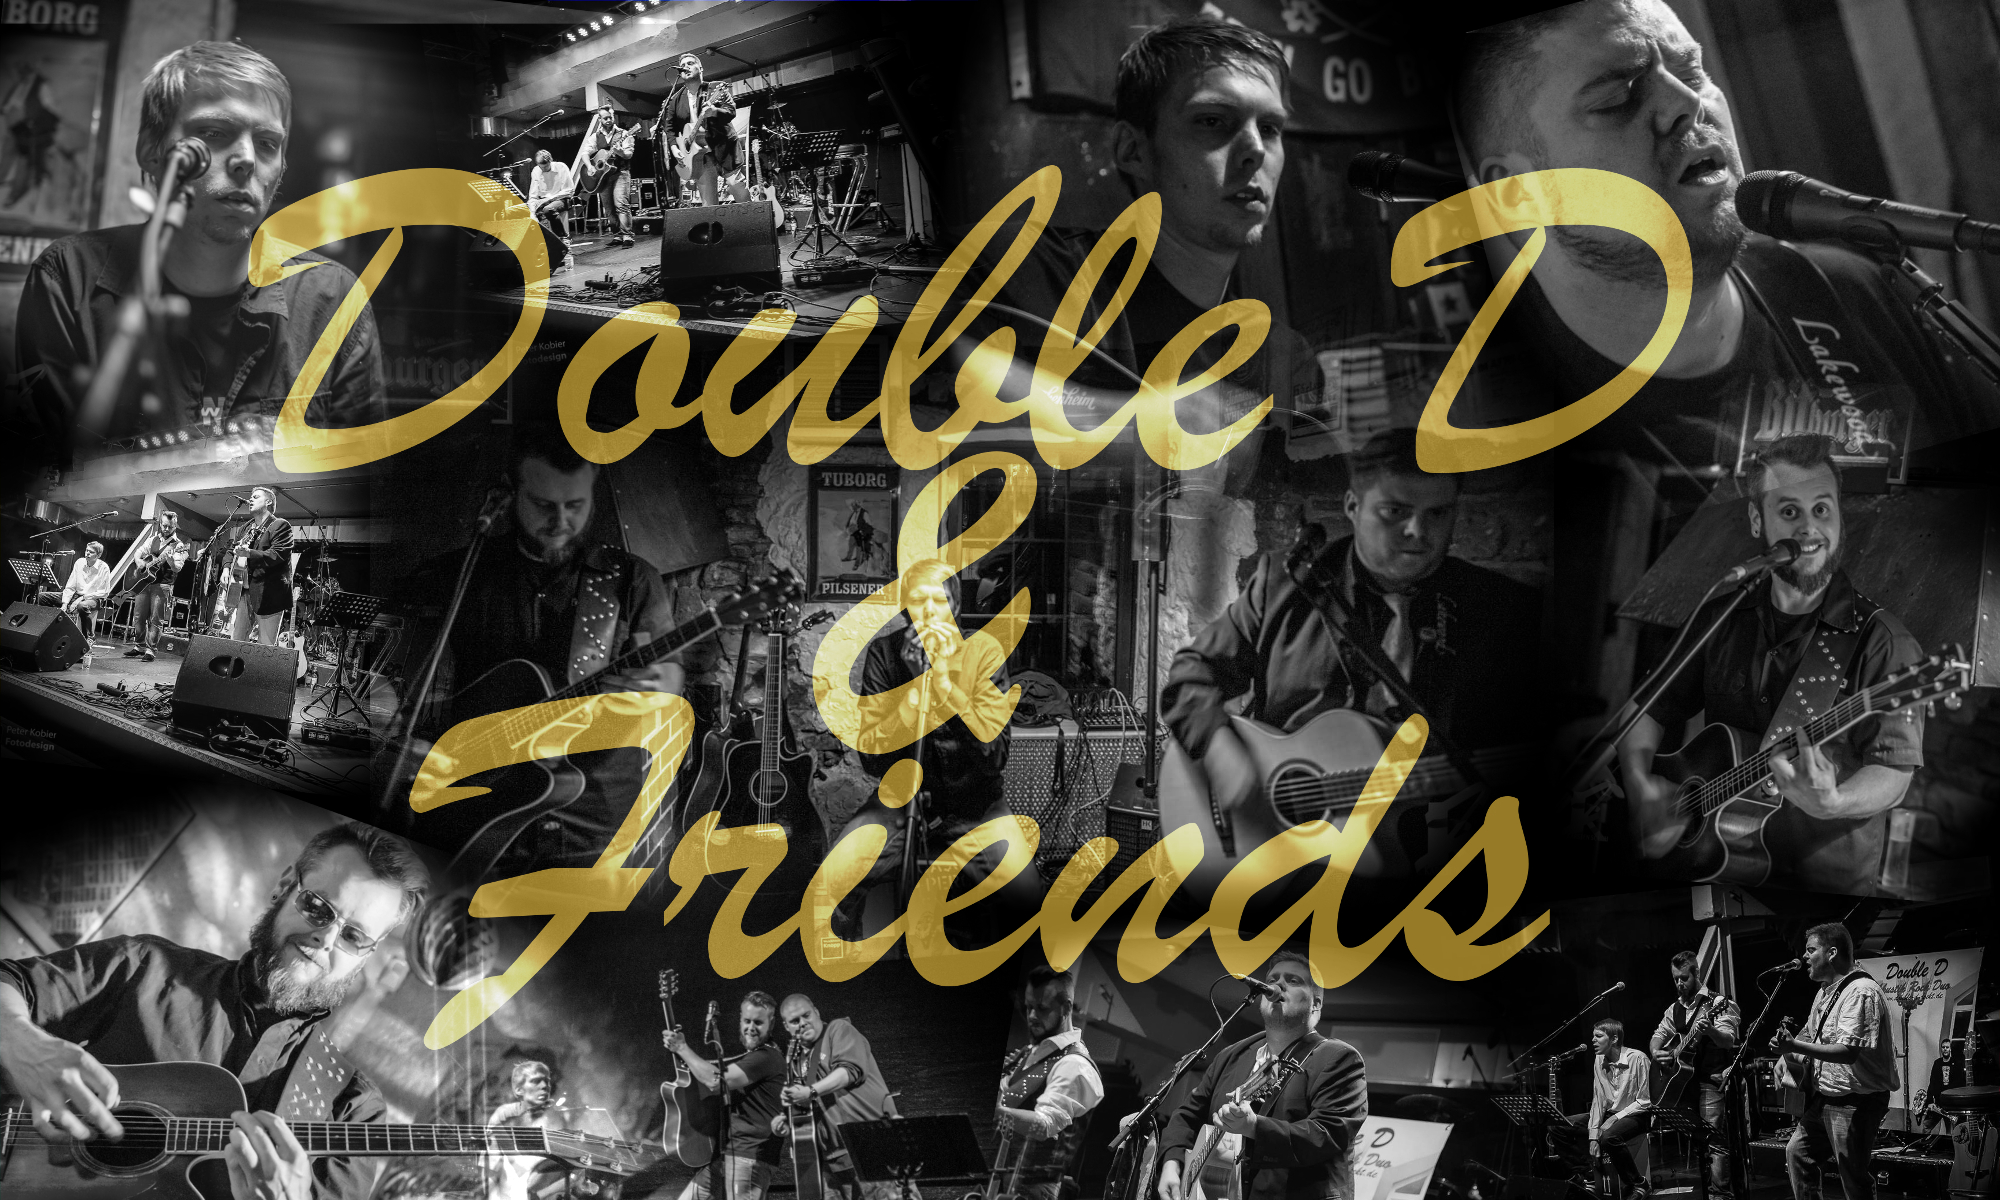 Double D and Friends